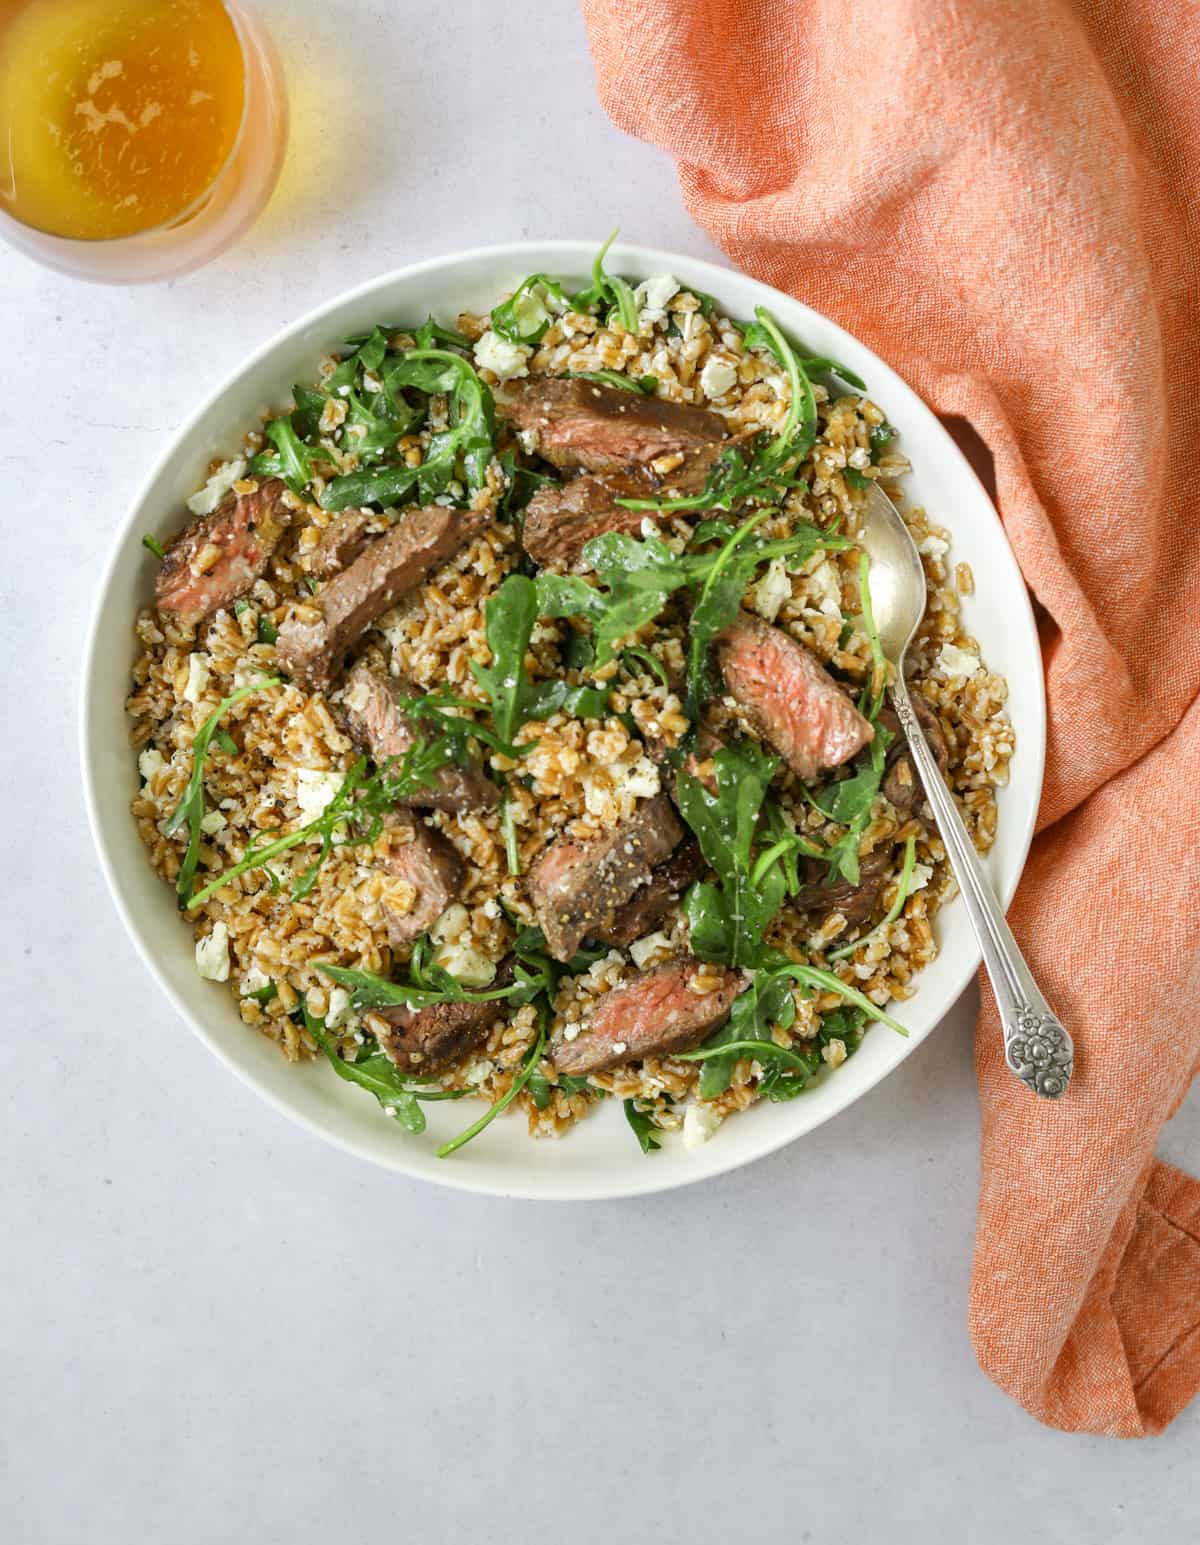 farro salad in a white bowl with a silver spoon and a pink tea towel and a glass of wine on a blue background